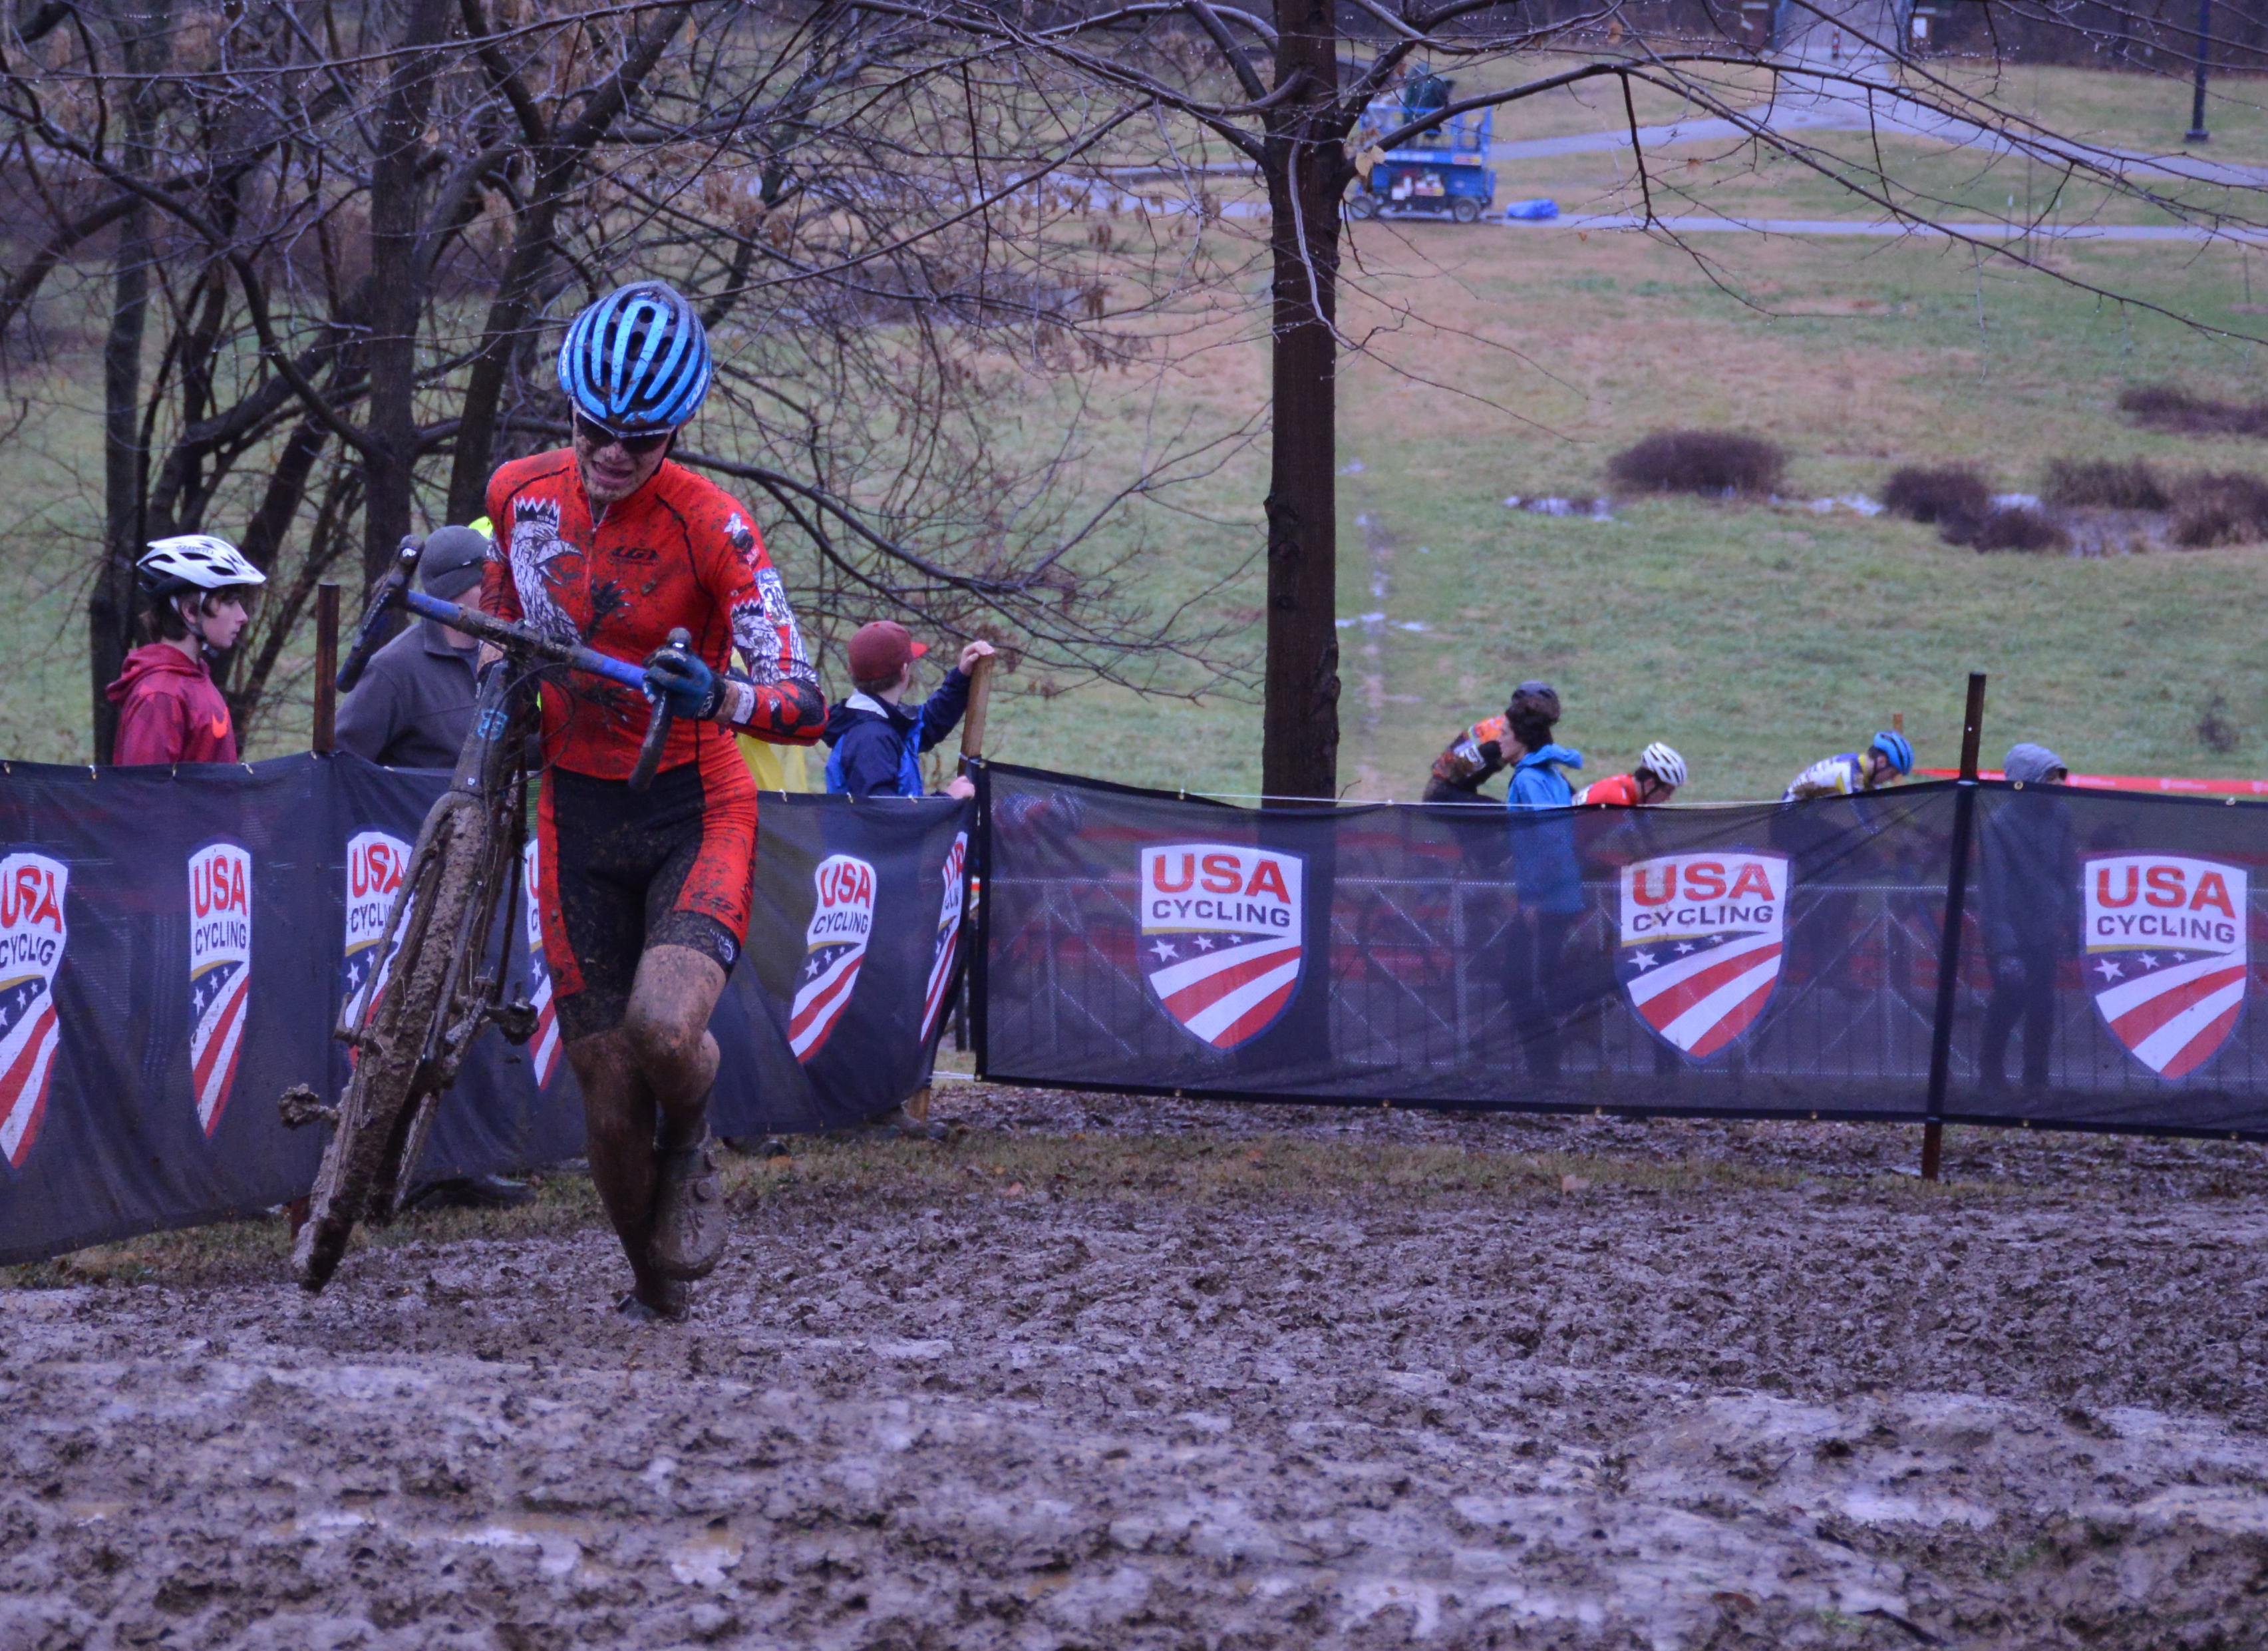 Ivan Gallego Wins Jr Men 15/16 CX National Championship!